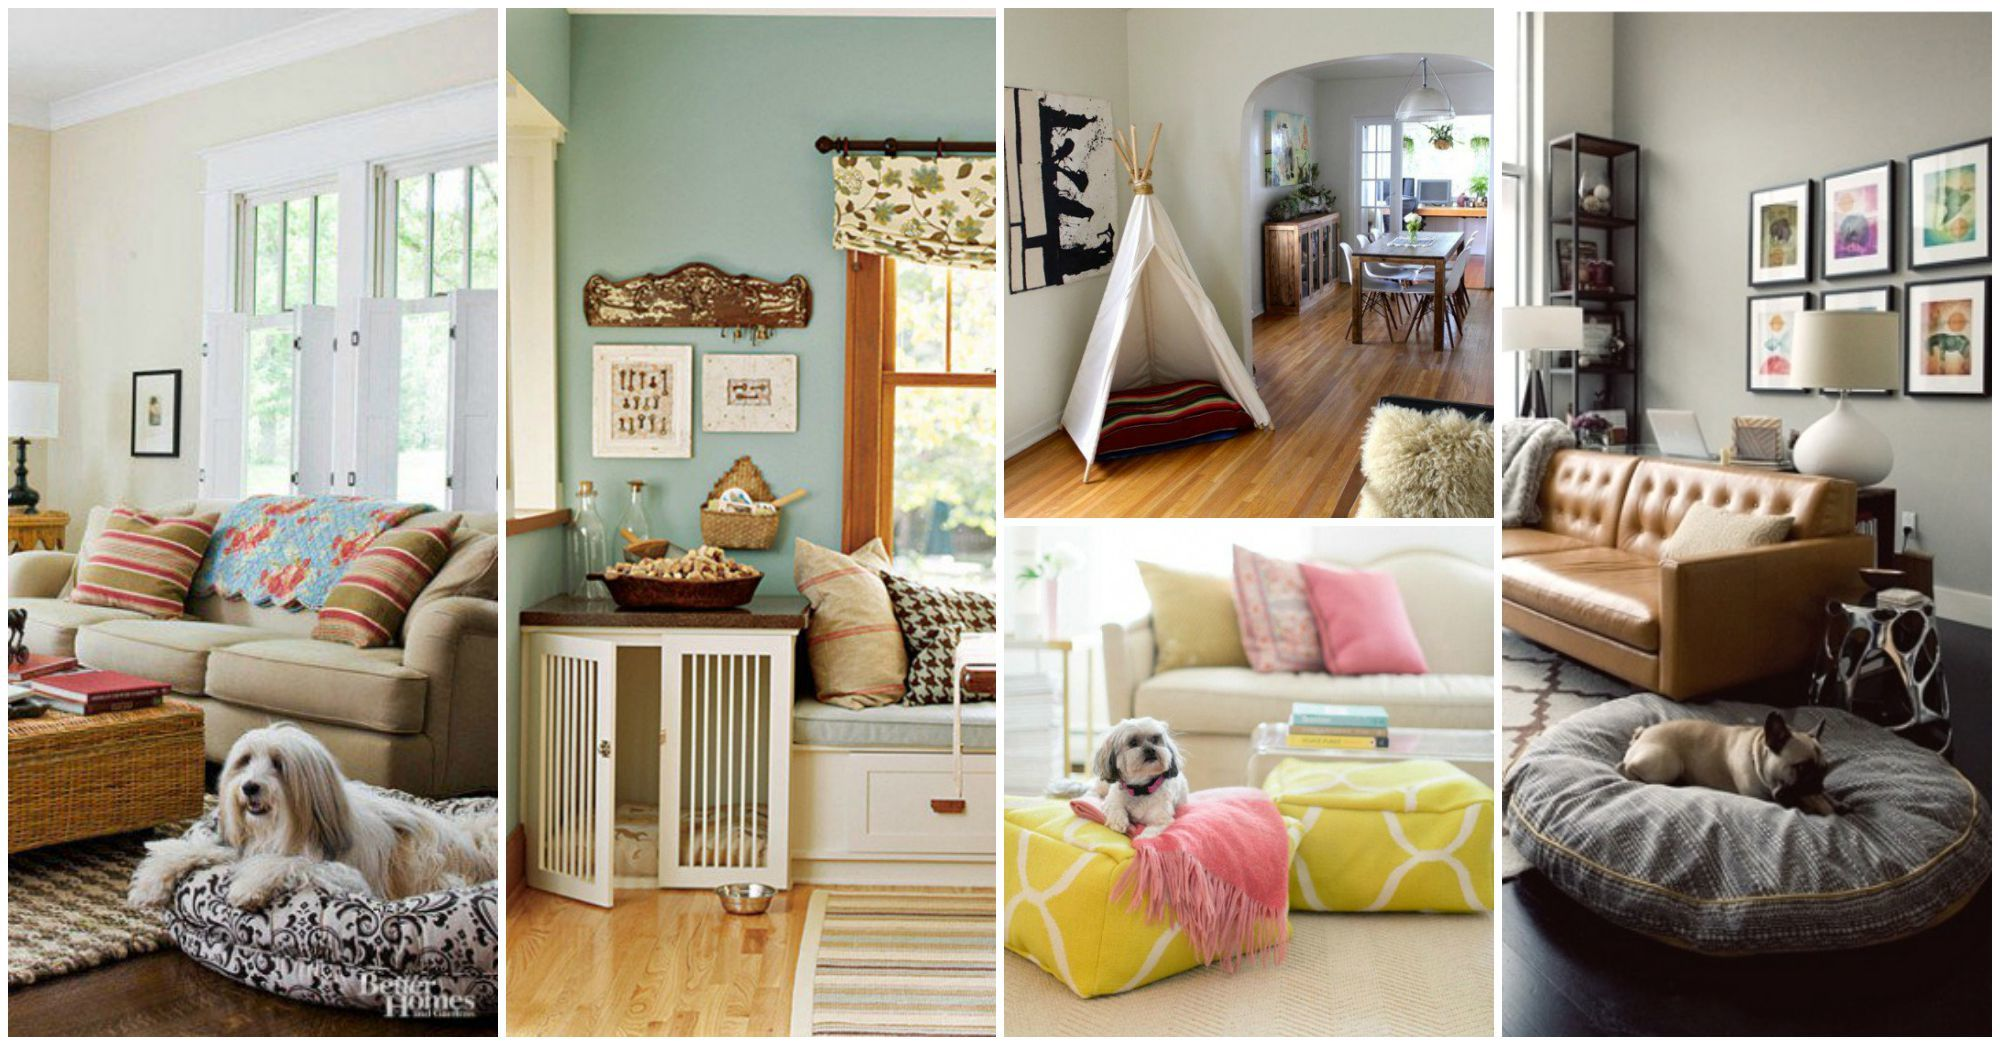 Adorable Dog Beds to Incorporate in Your Living Room